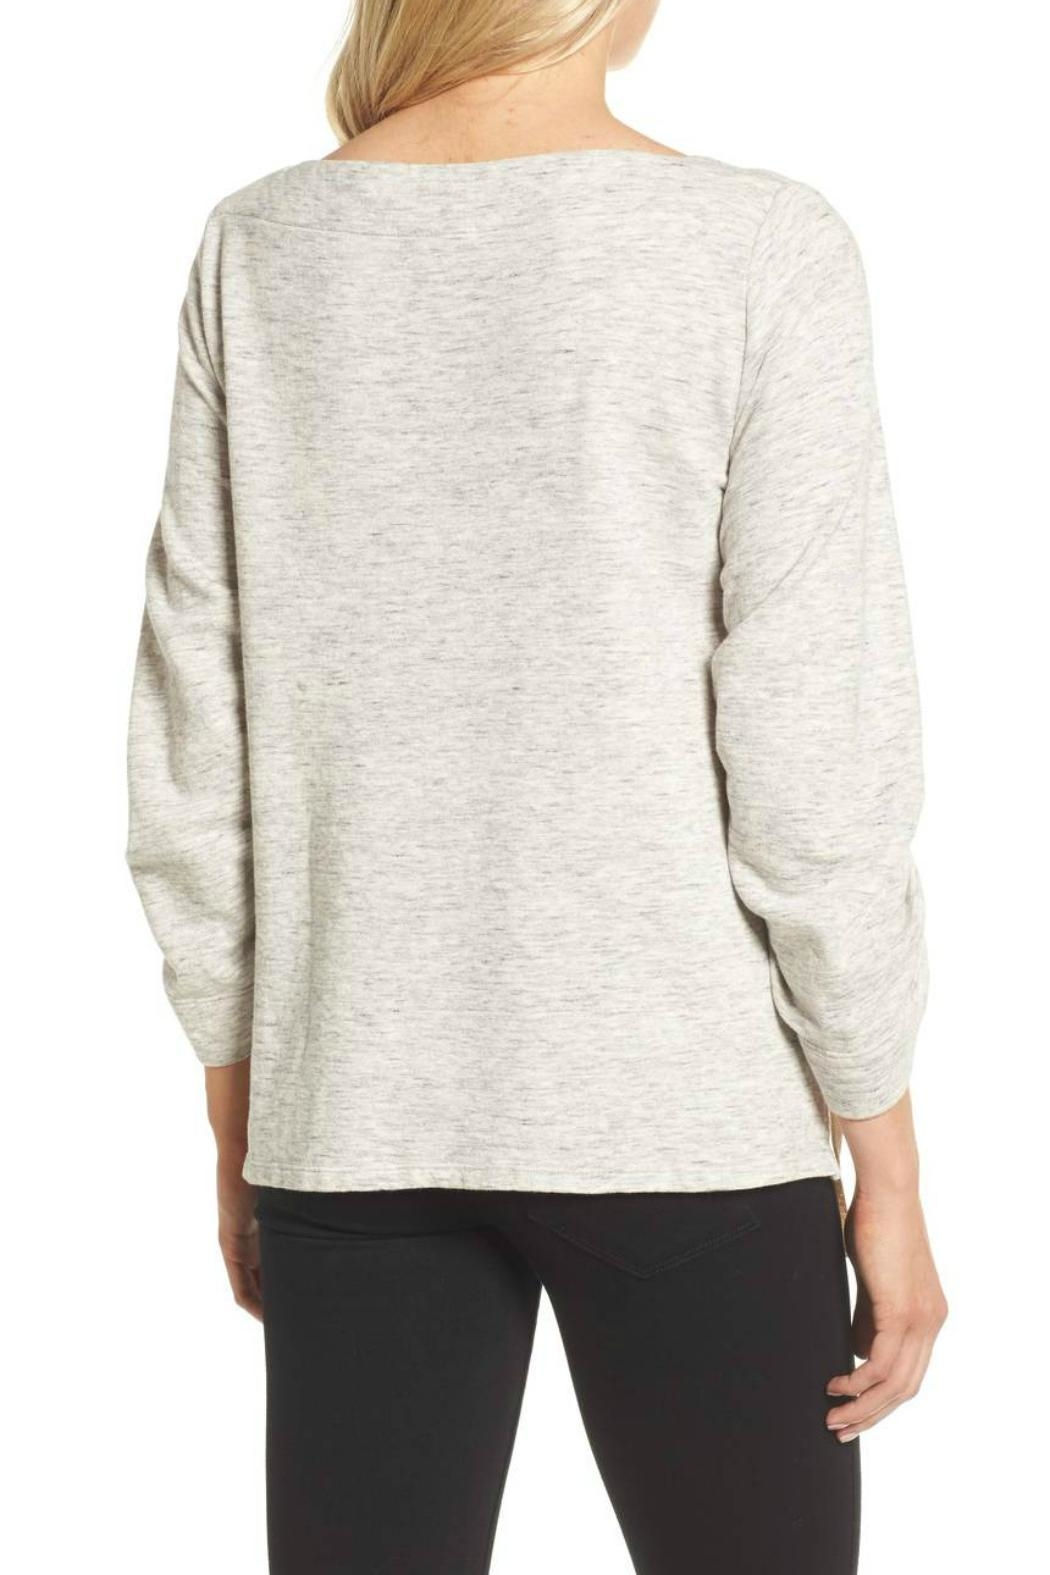 Ella Moss Ruched Sleeve Sweatshirt - Side Cropped Image